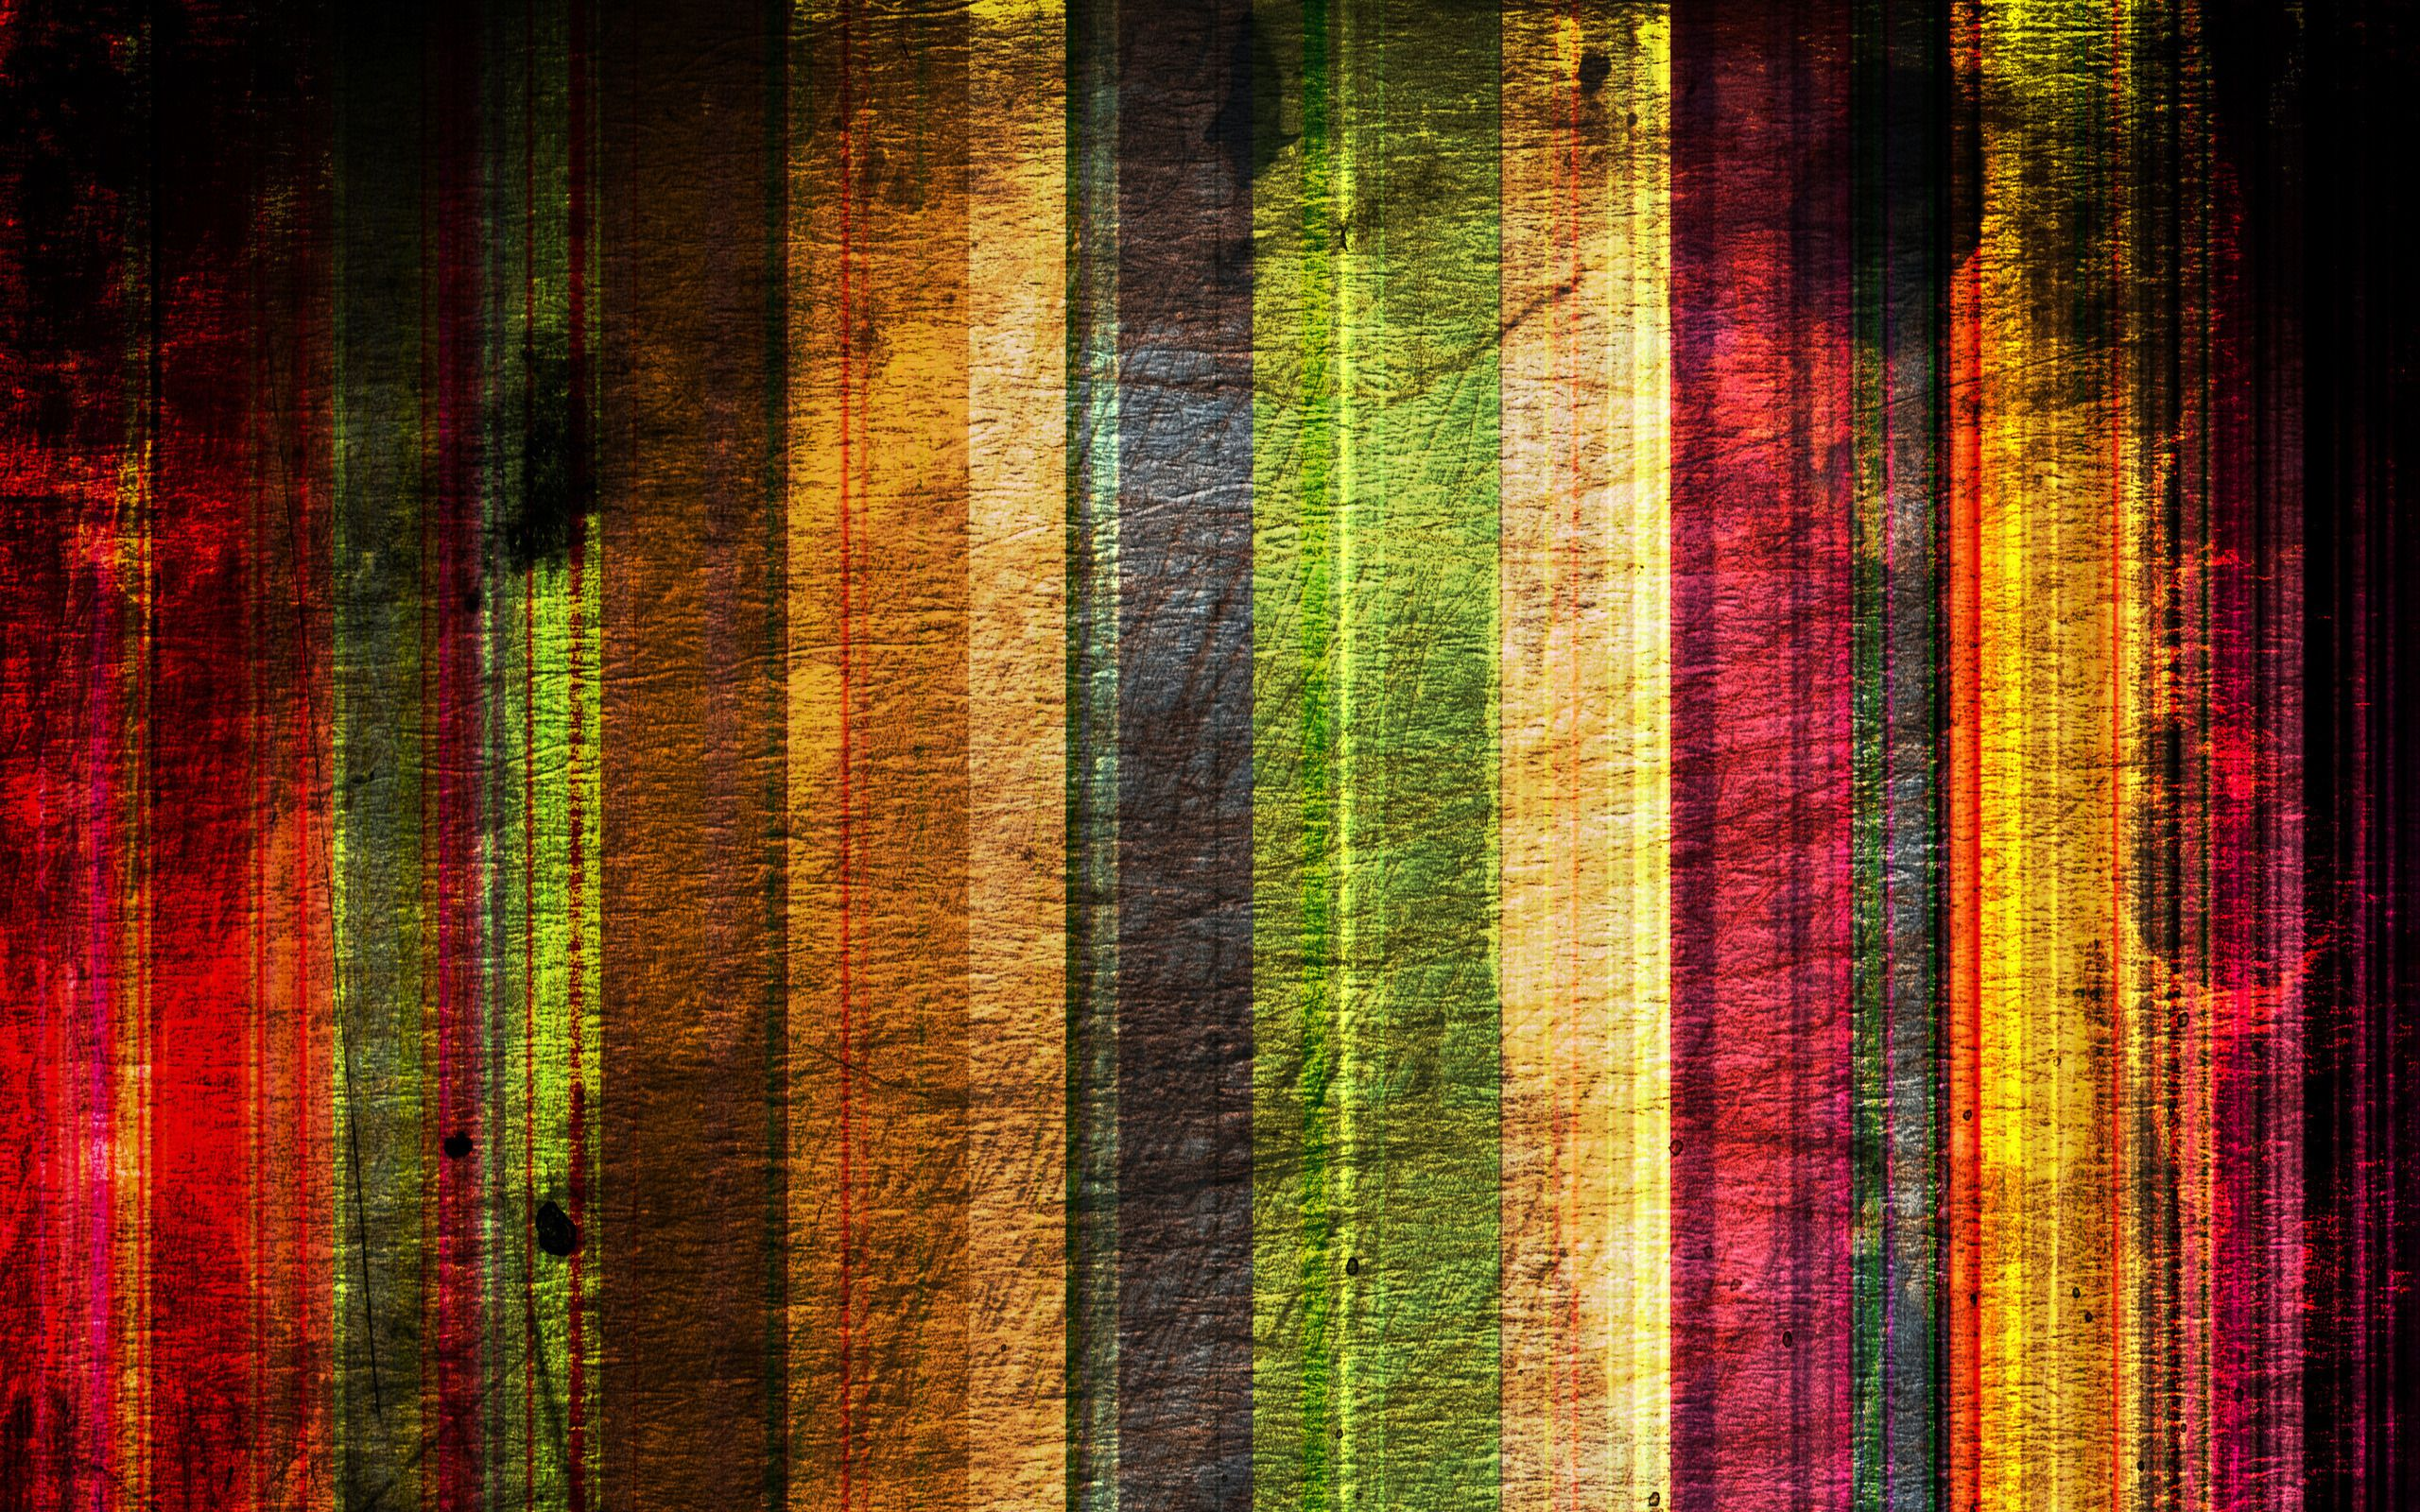 colorful carpet texture background - photo #17